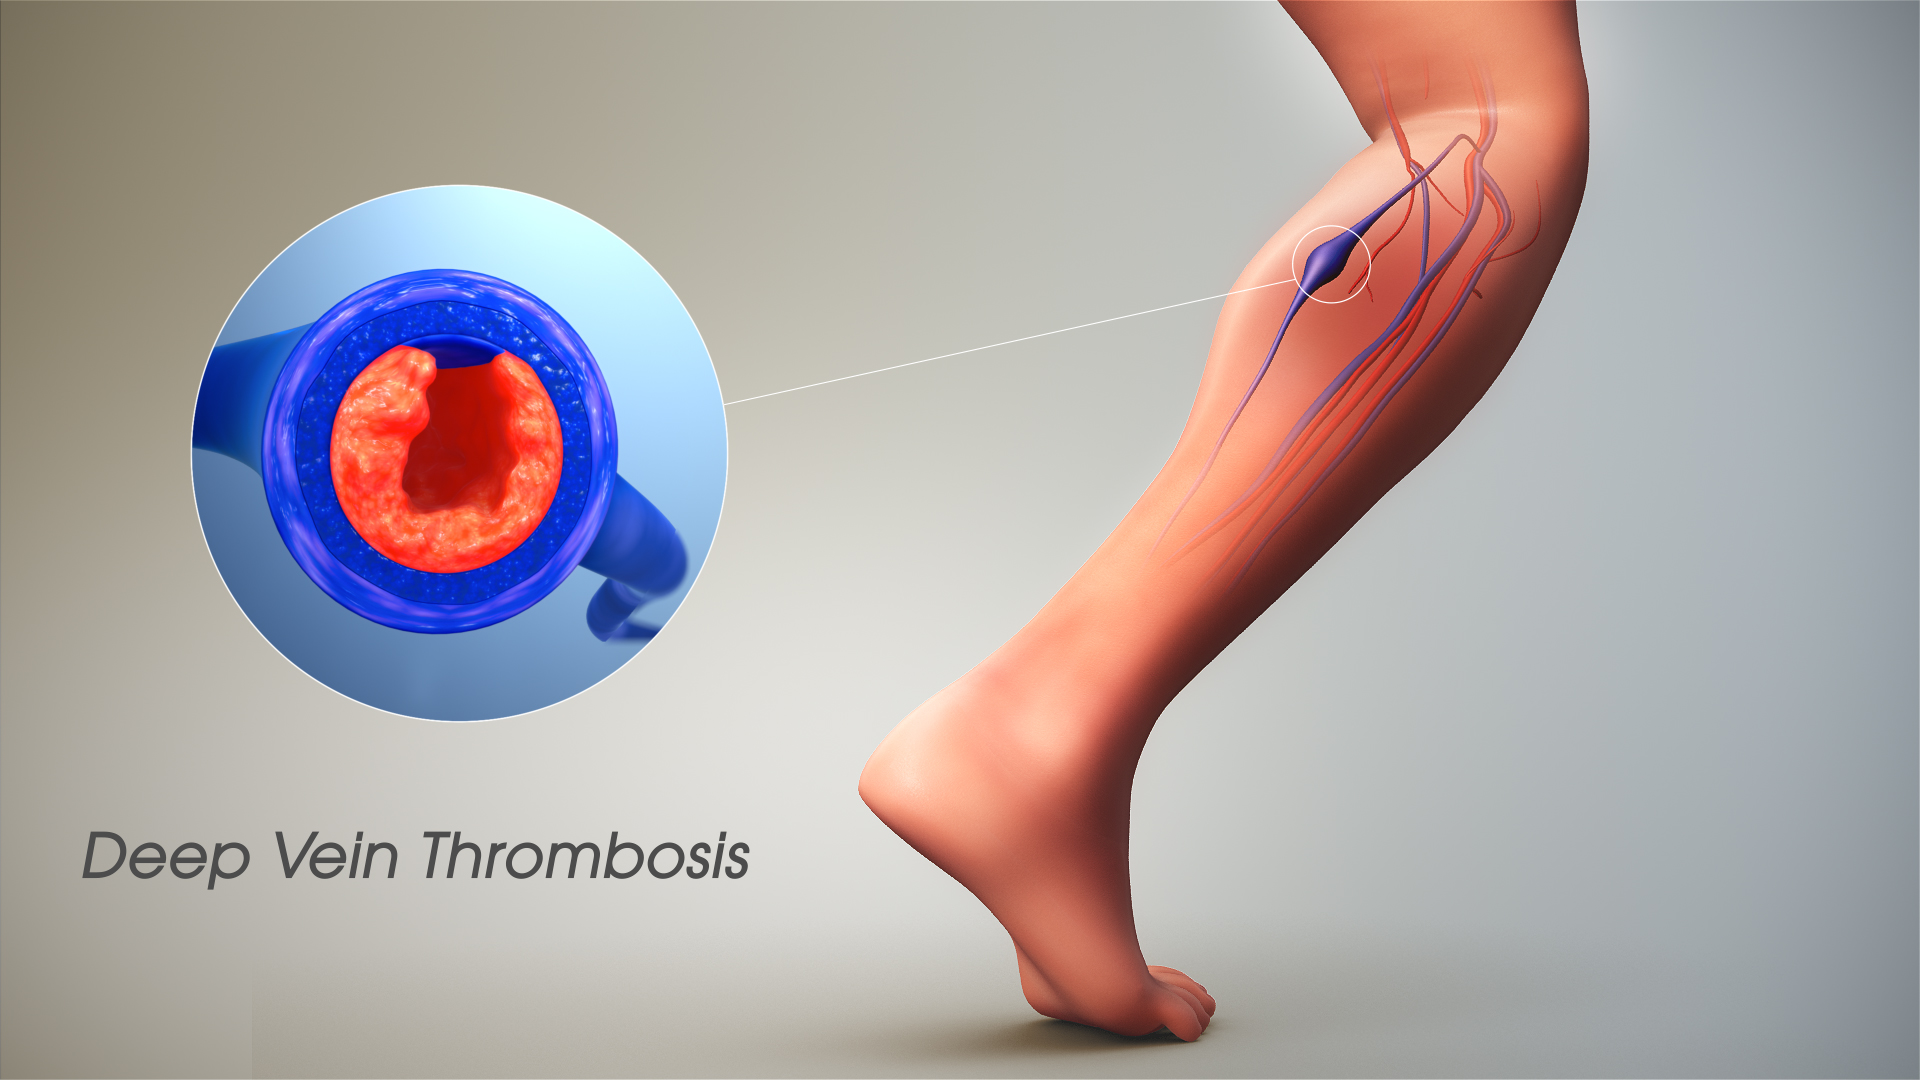 Why Must DVT Patients Take Blood Thinners for Six Months?